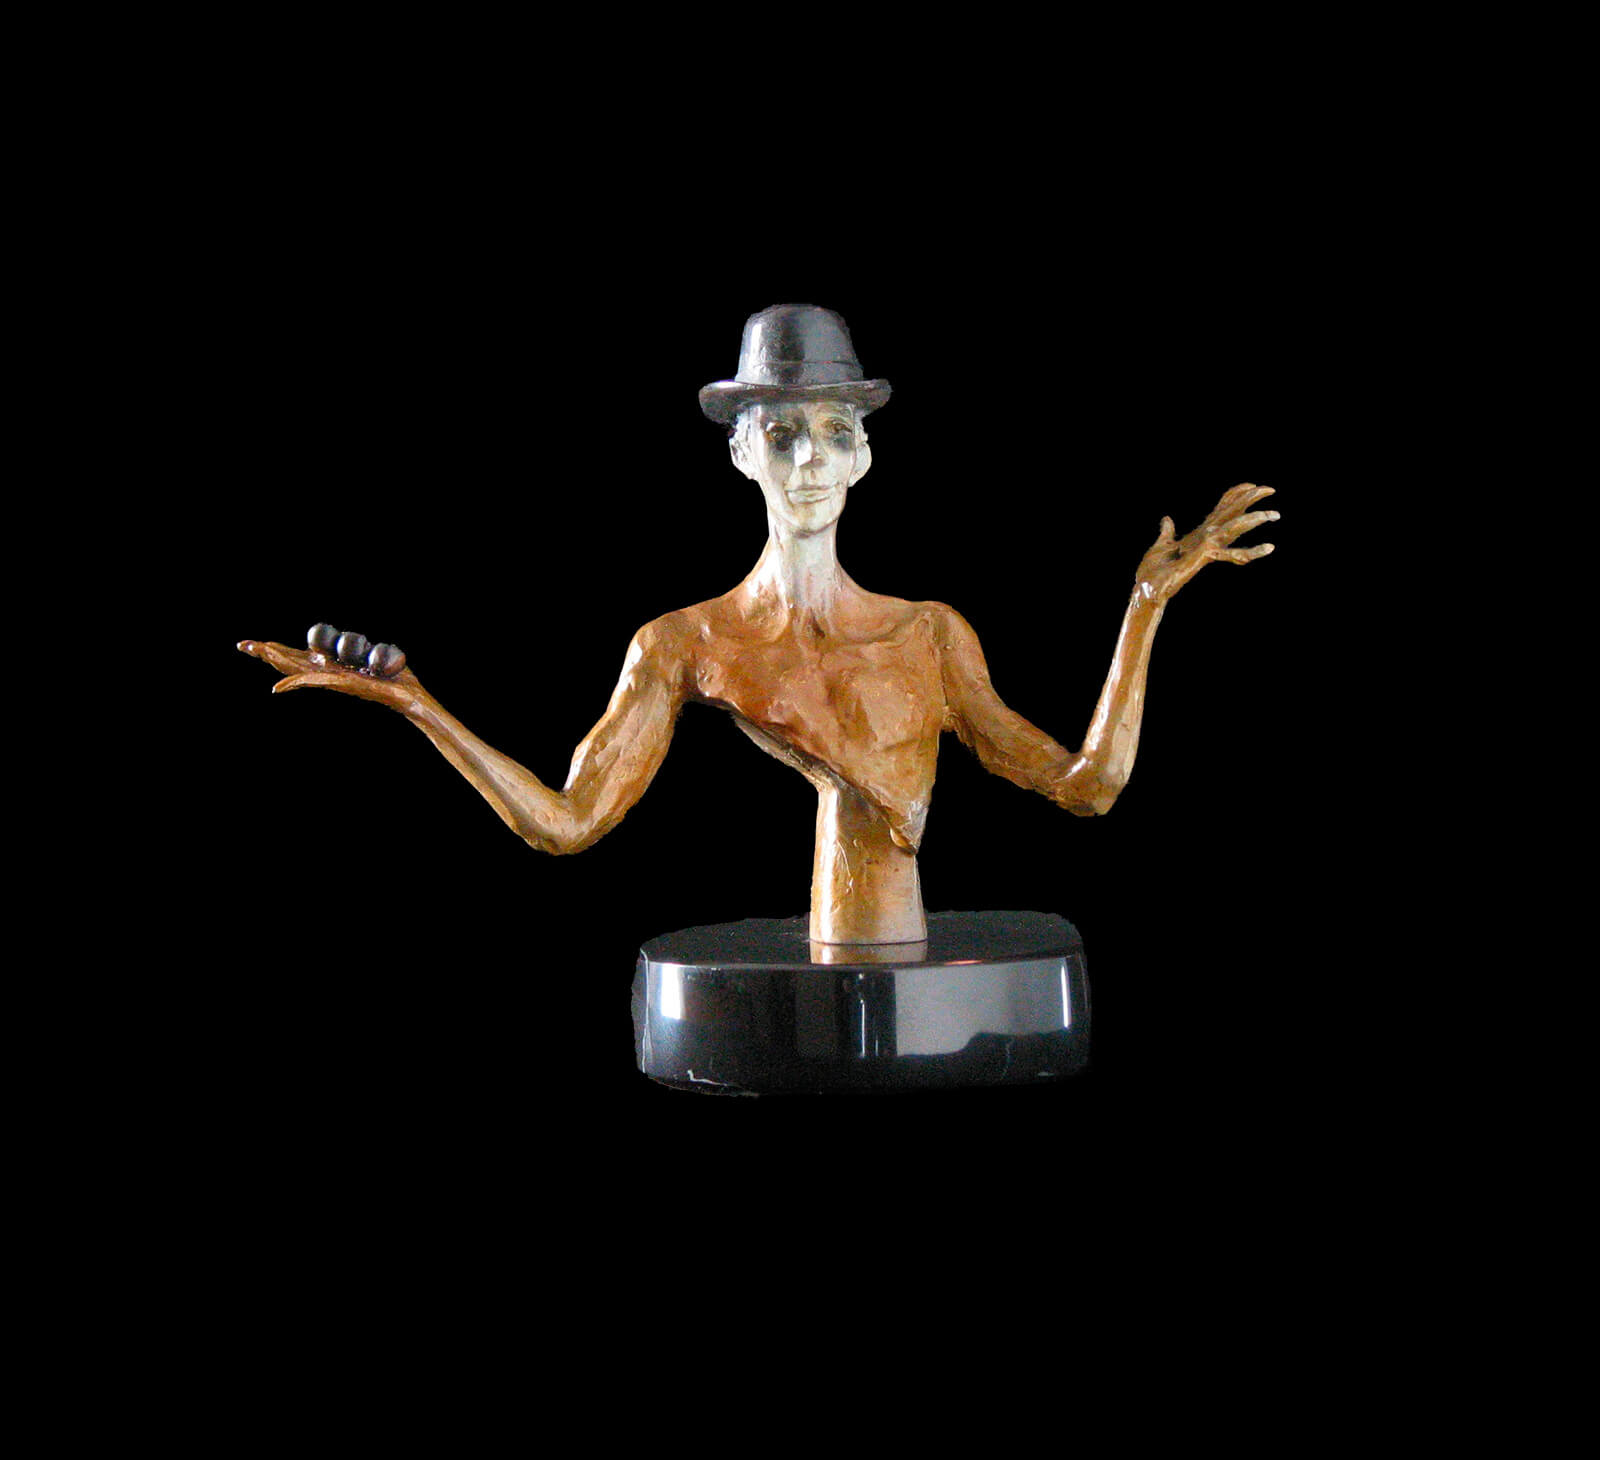 Juggler Bust a small figurative sculpture by Andrew DeVries